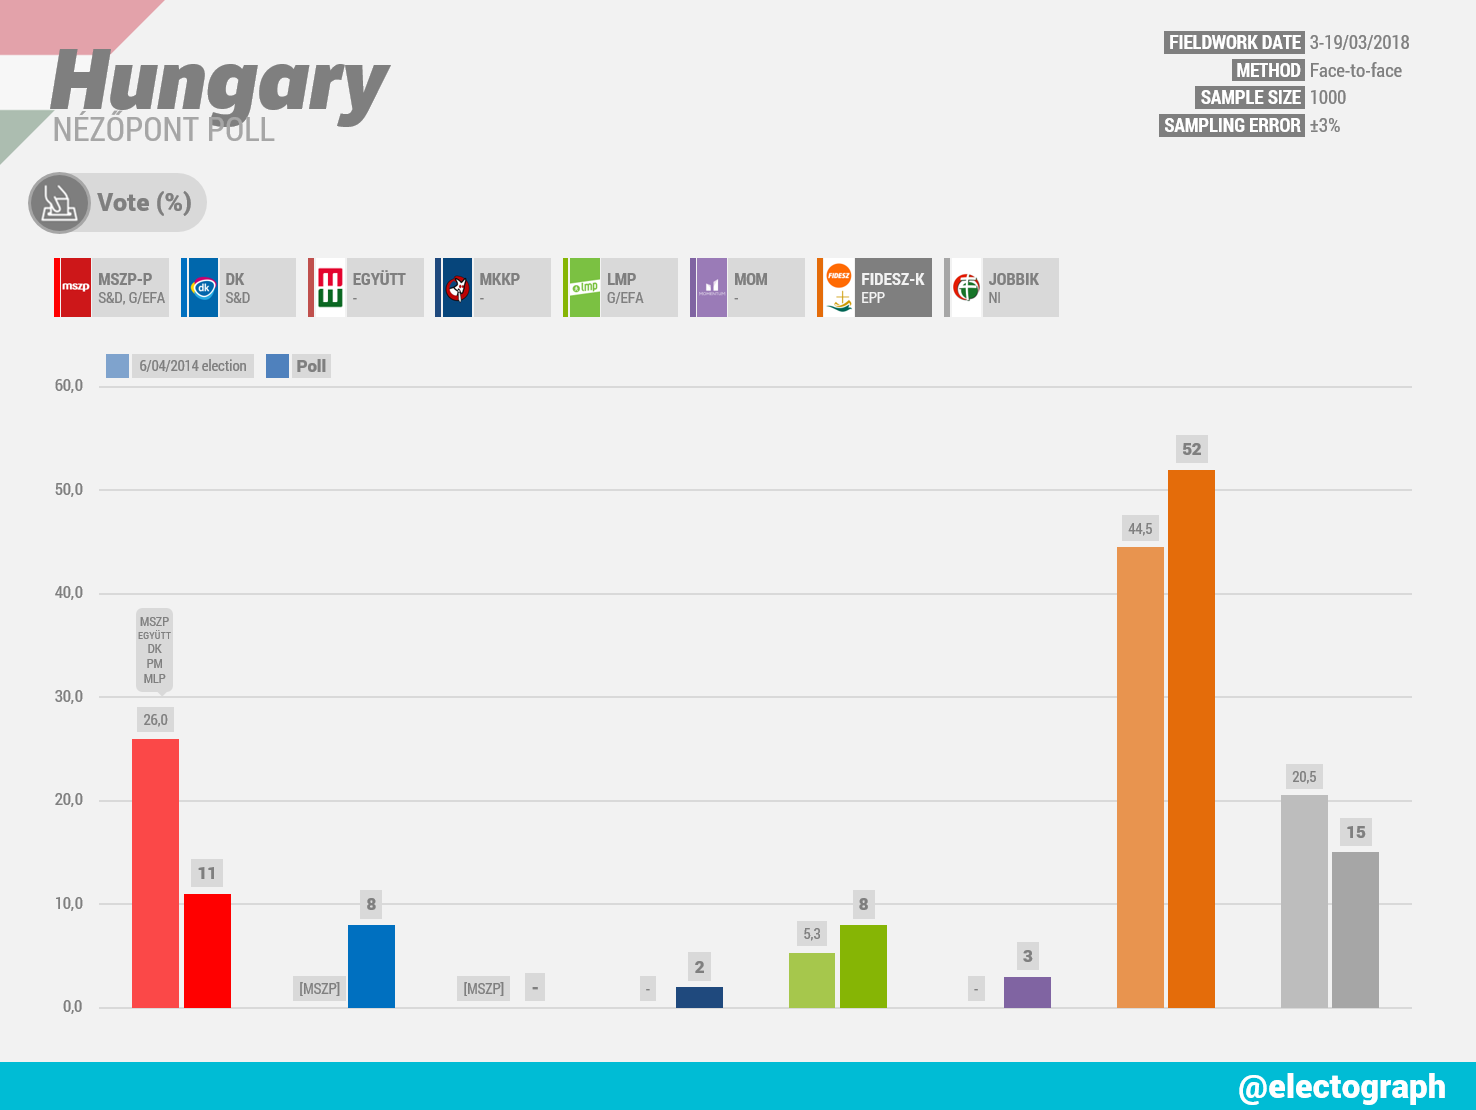 HUNGARY Nézőpont poll chart, March 2018